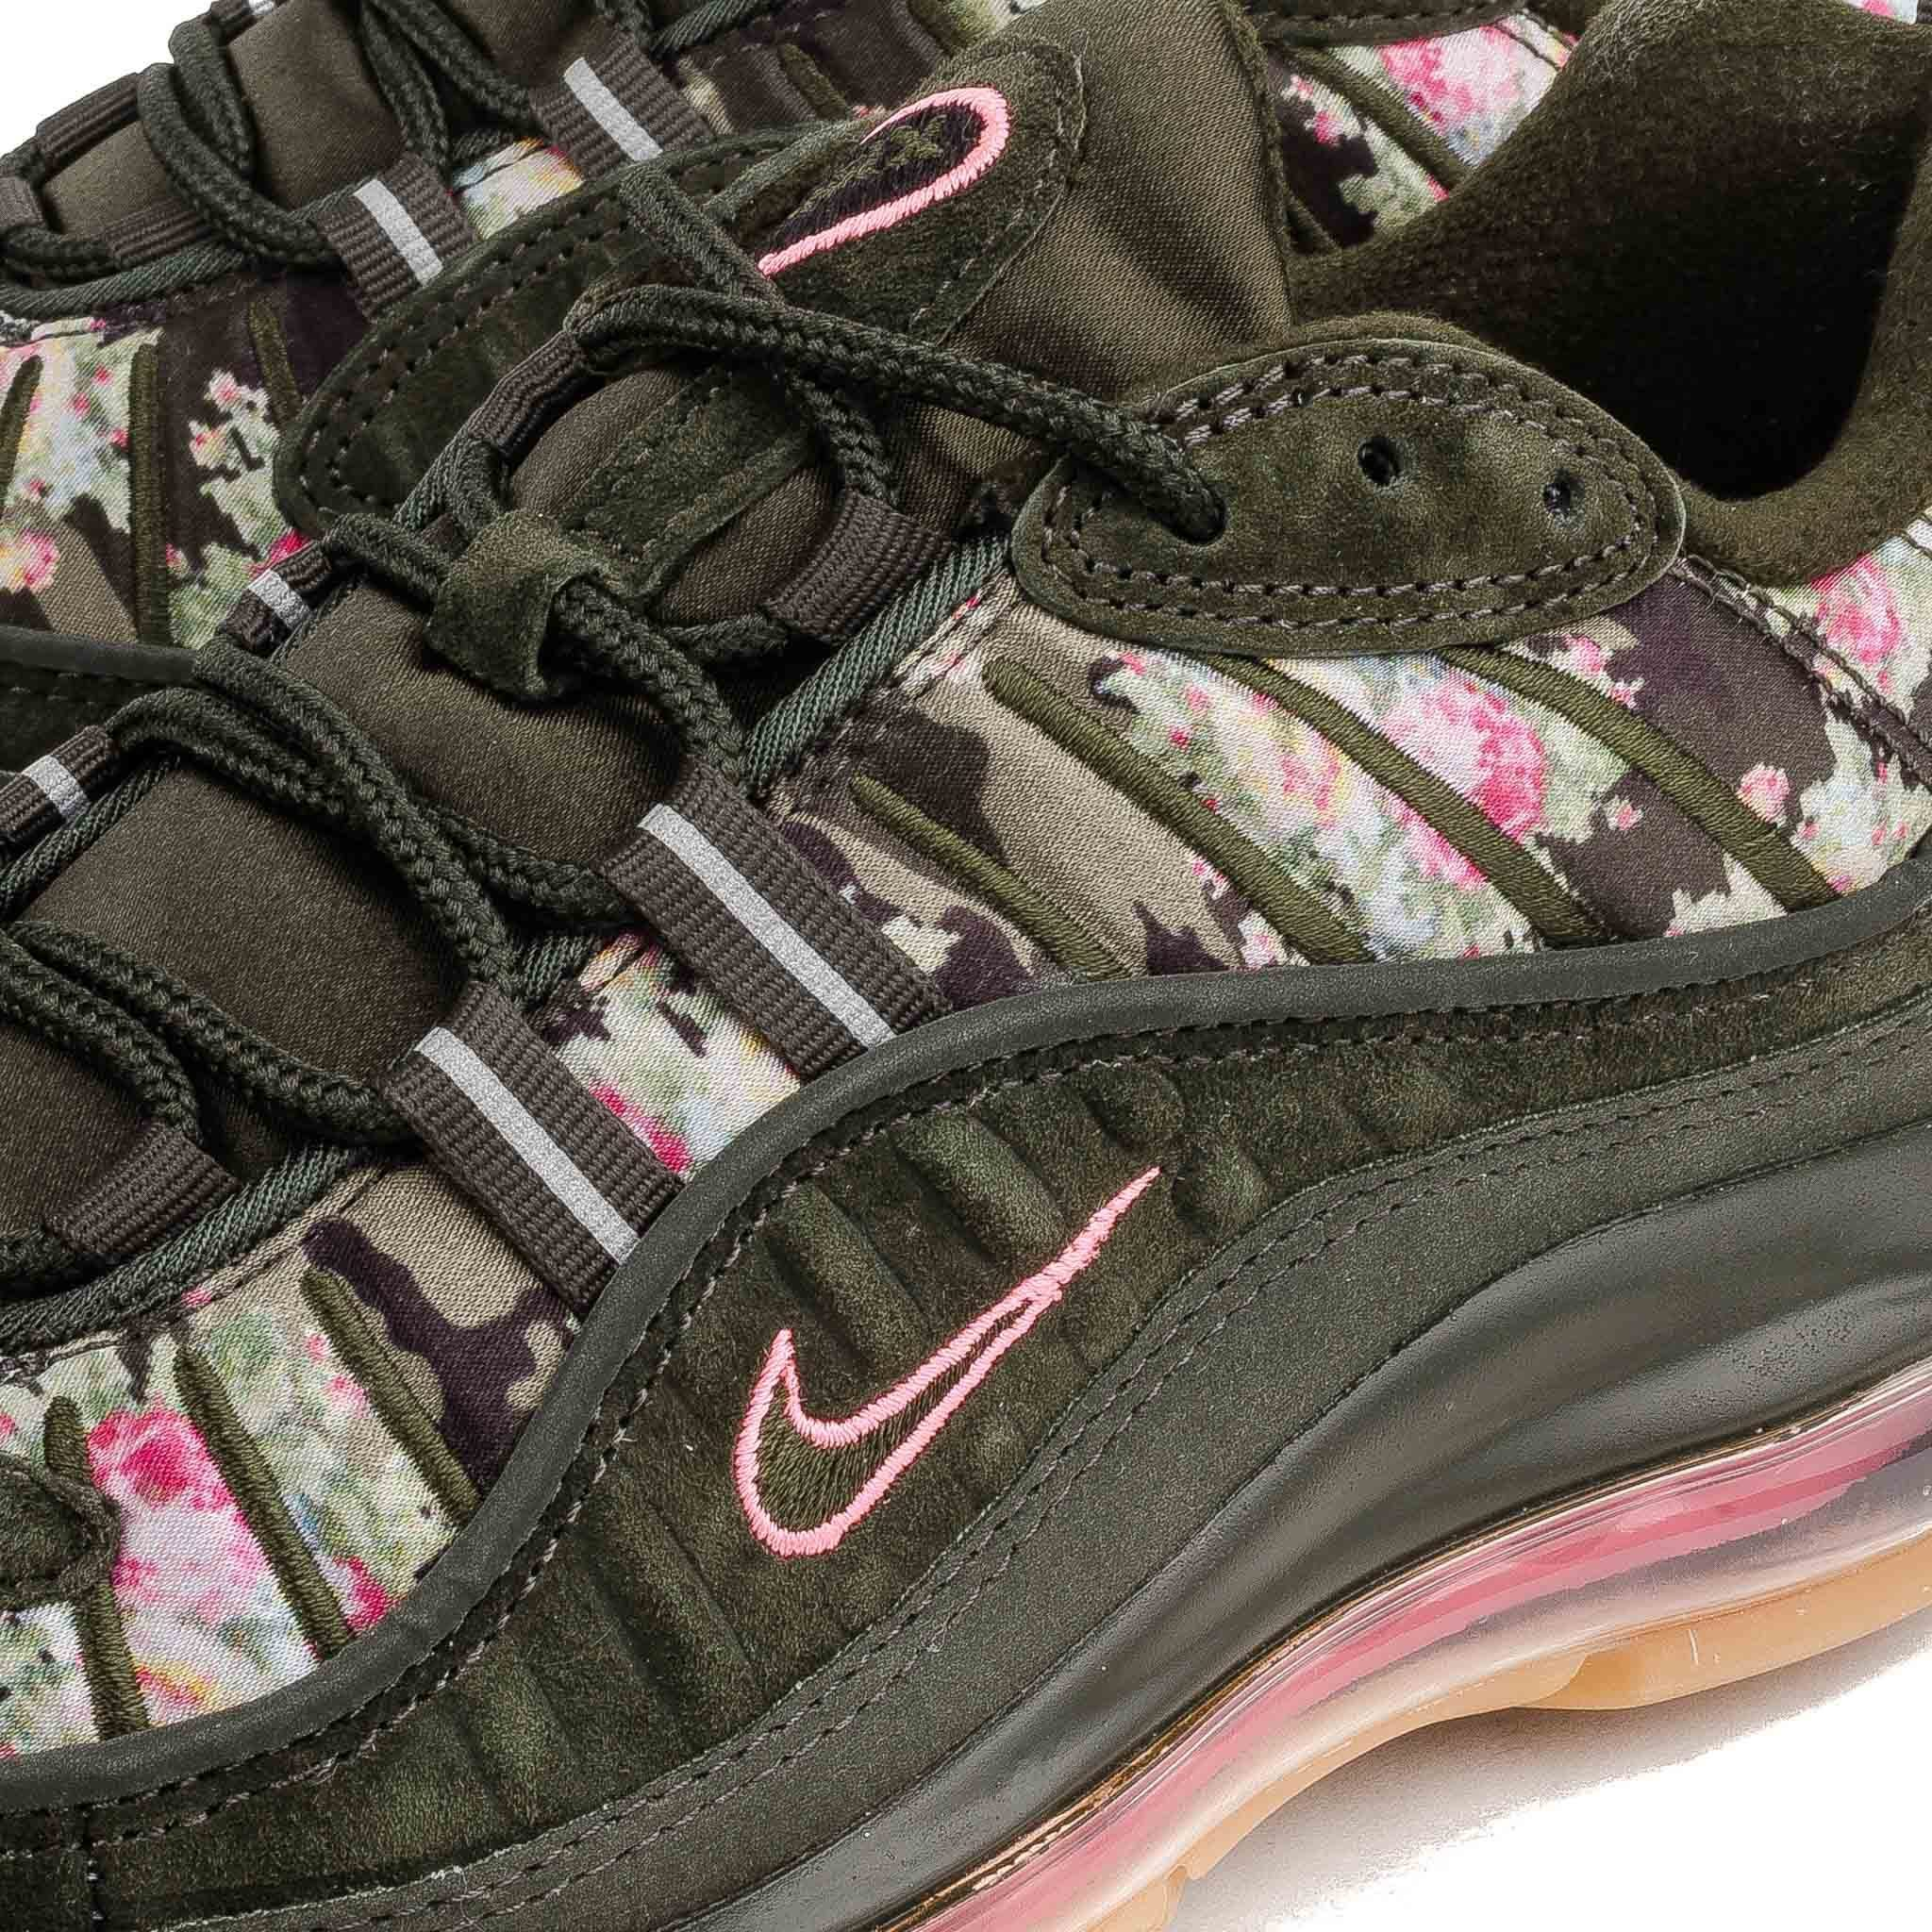 WMNS Nike Air Max 98 'Sequoia' AQ6488-300 (Detail)